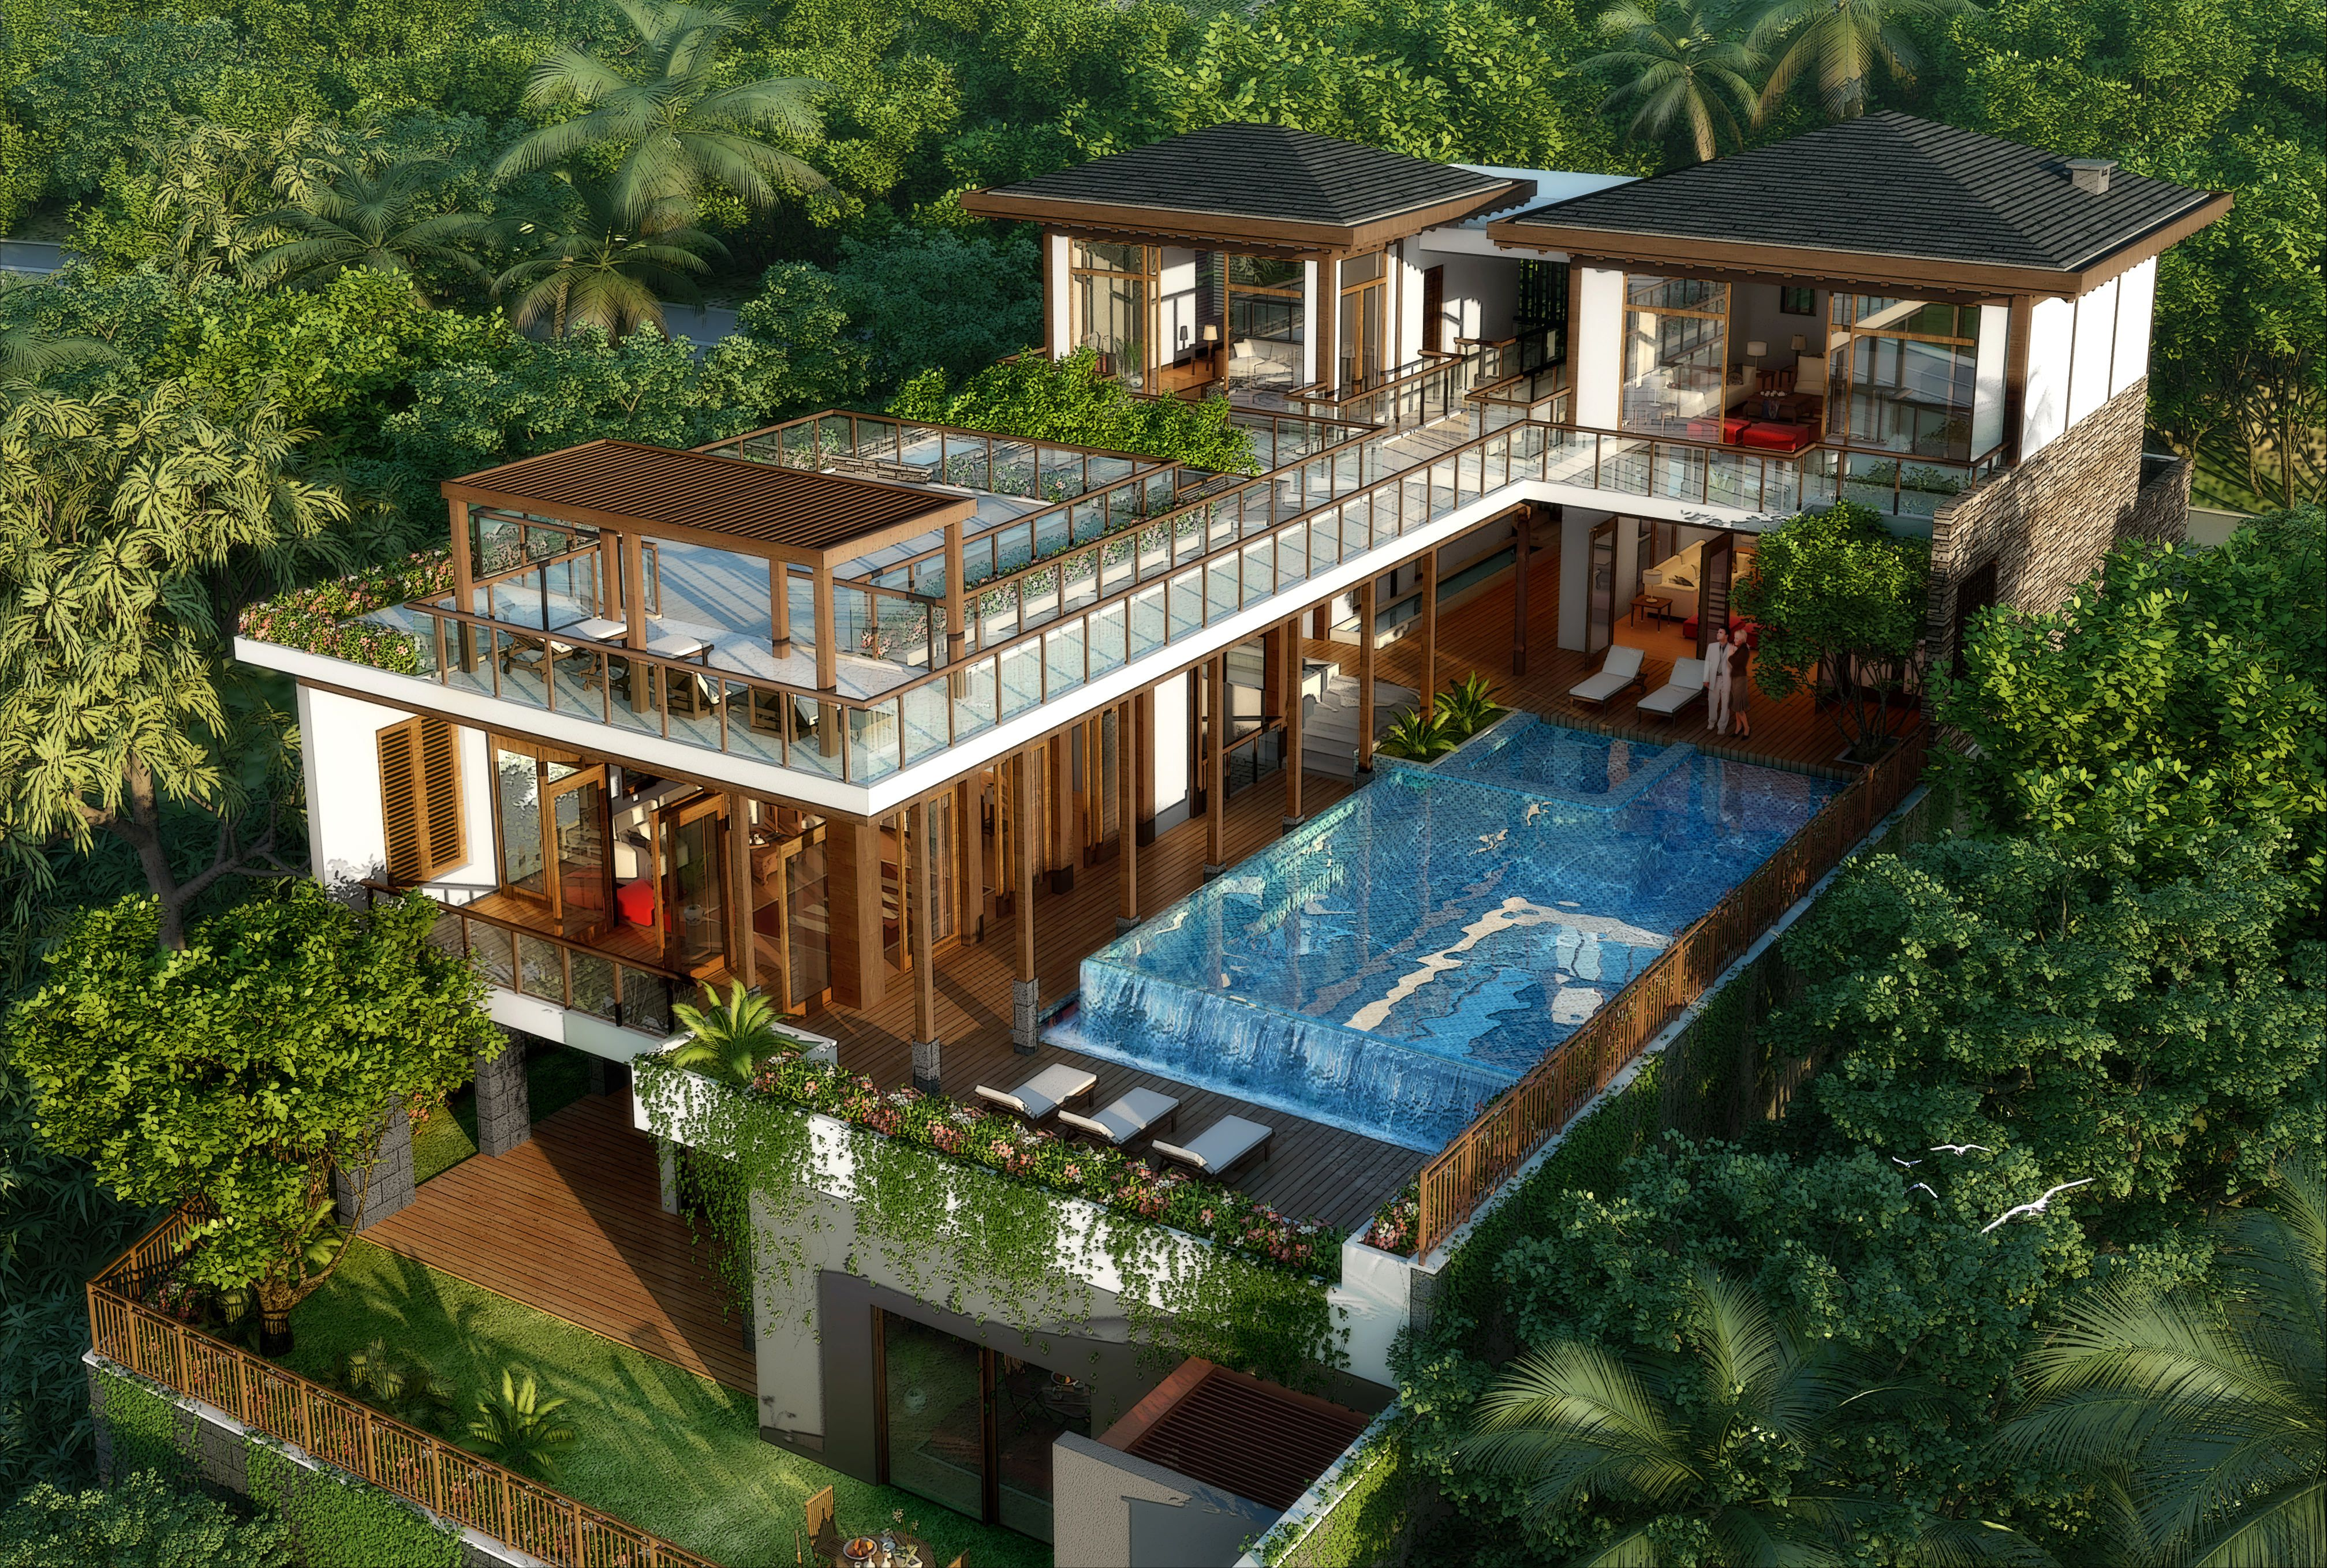 Wonderful Picture Of Tropical Home Design Ideas Interior Design Ideas Home Decorating Inspiration Moercar Tropical House Design Modern Tropical House Mansions